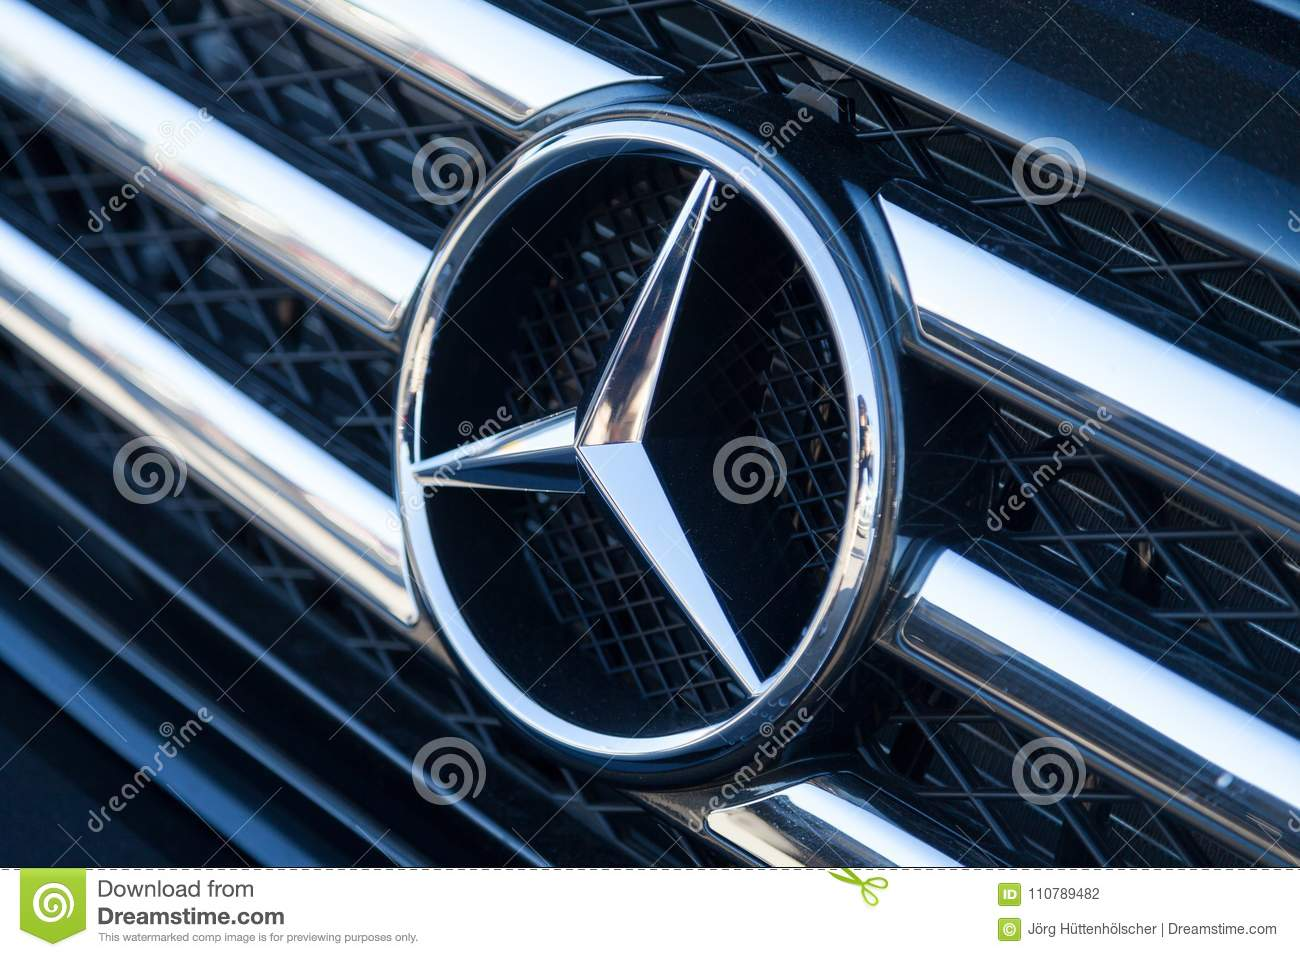 Mercedes Benz Symbol On A Car Editorial Photography Image Of Logo